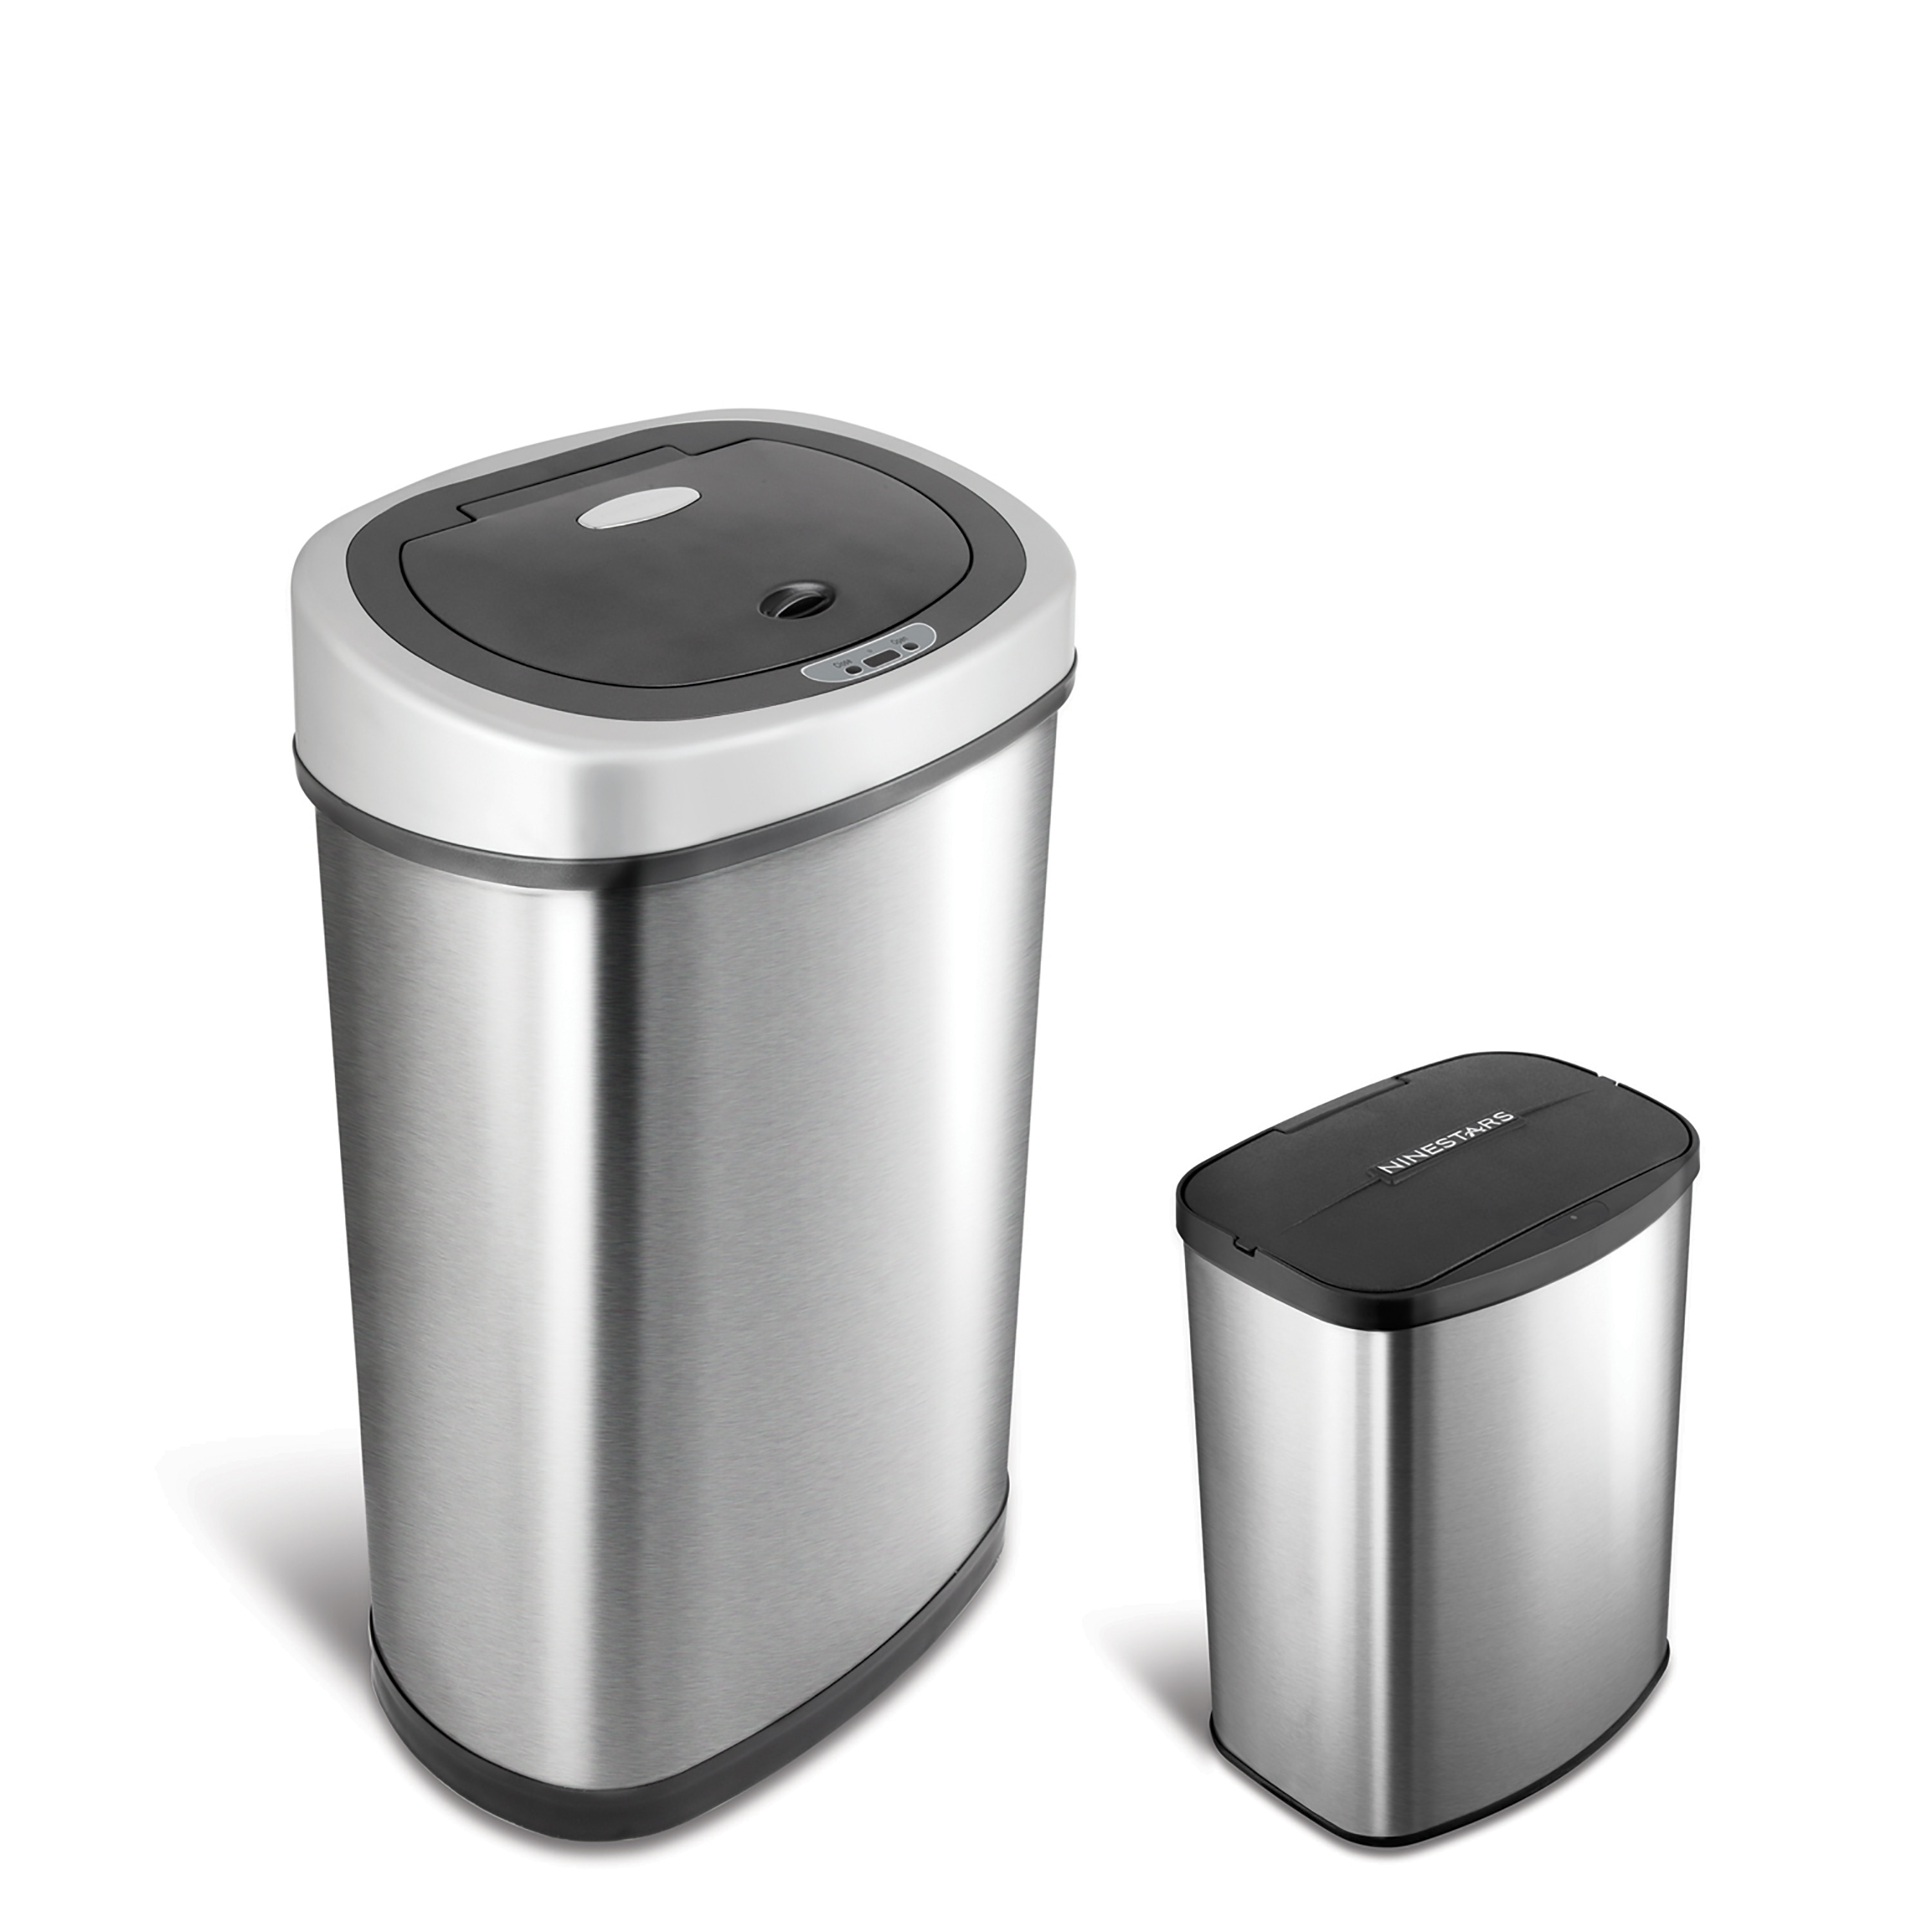 Metal Indoor Trash Can Motion Sensor Stainless Steel 2 In 1 Combo Bathroom Kitchen Trash Can Set